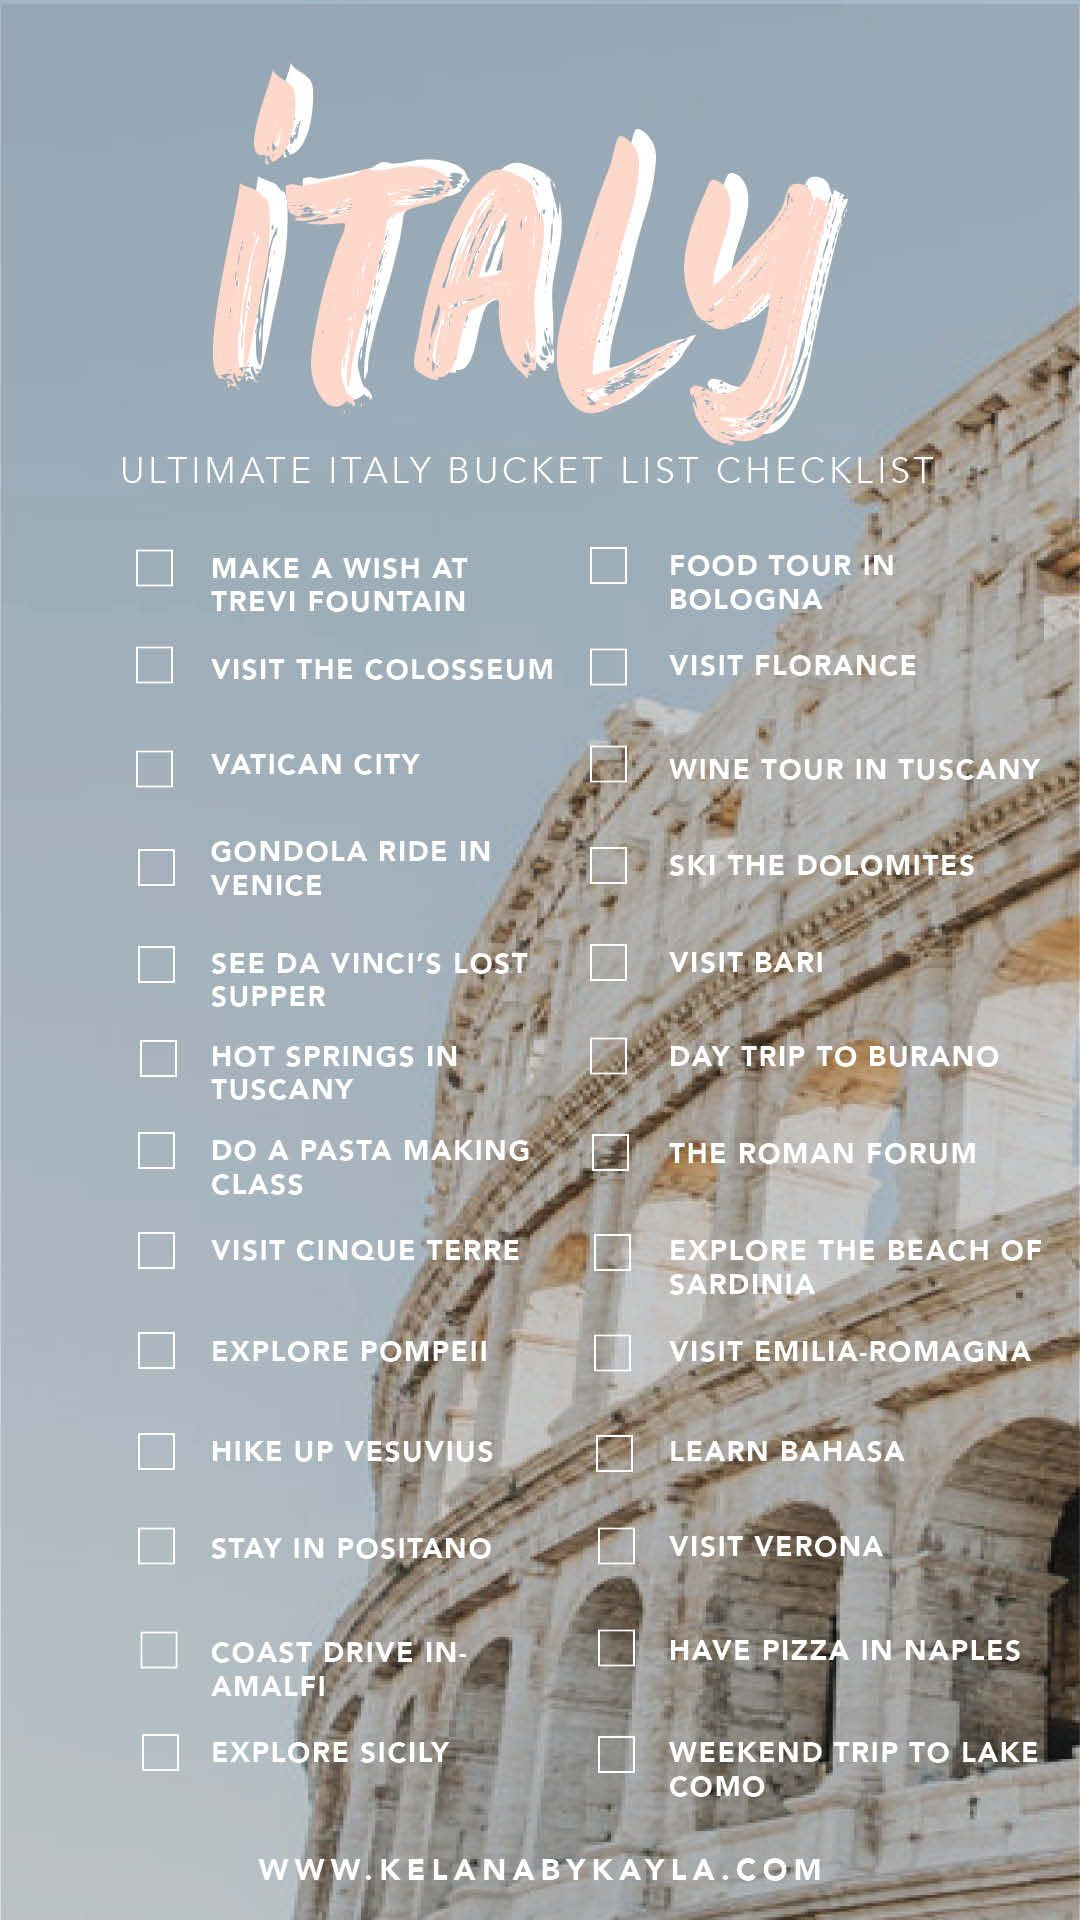 The Ultimate Italy Bucket List: 30+ Amazing Things To Do In Italy